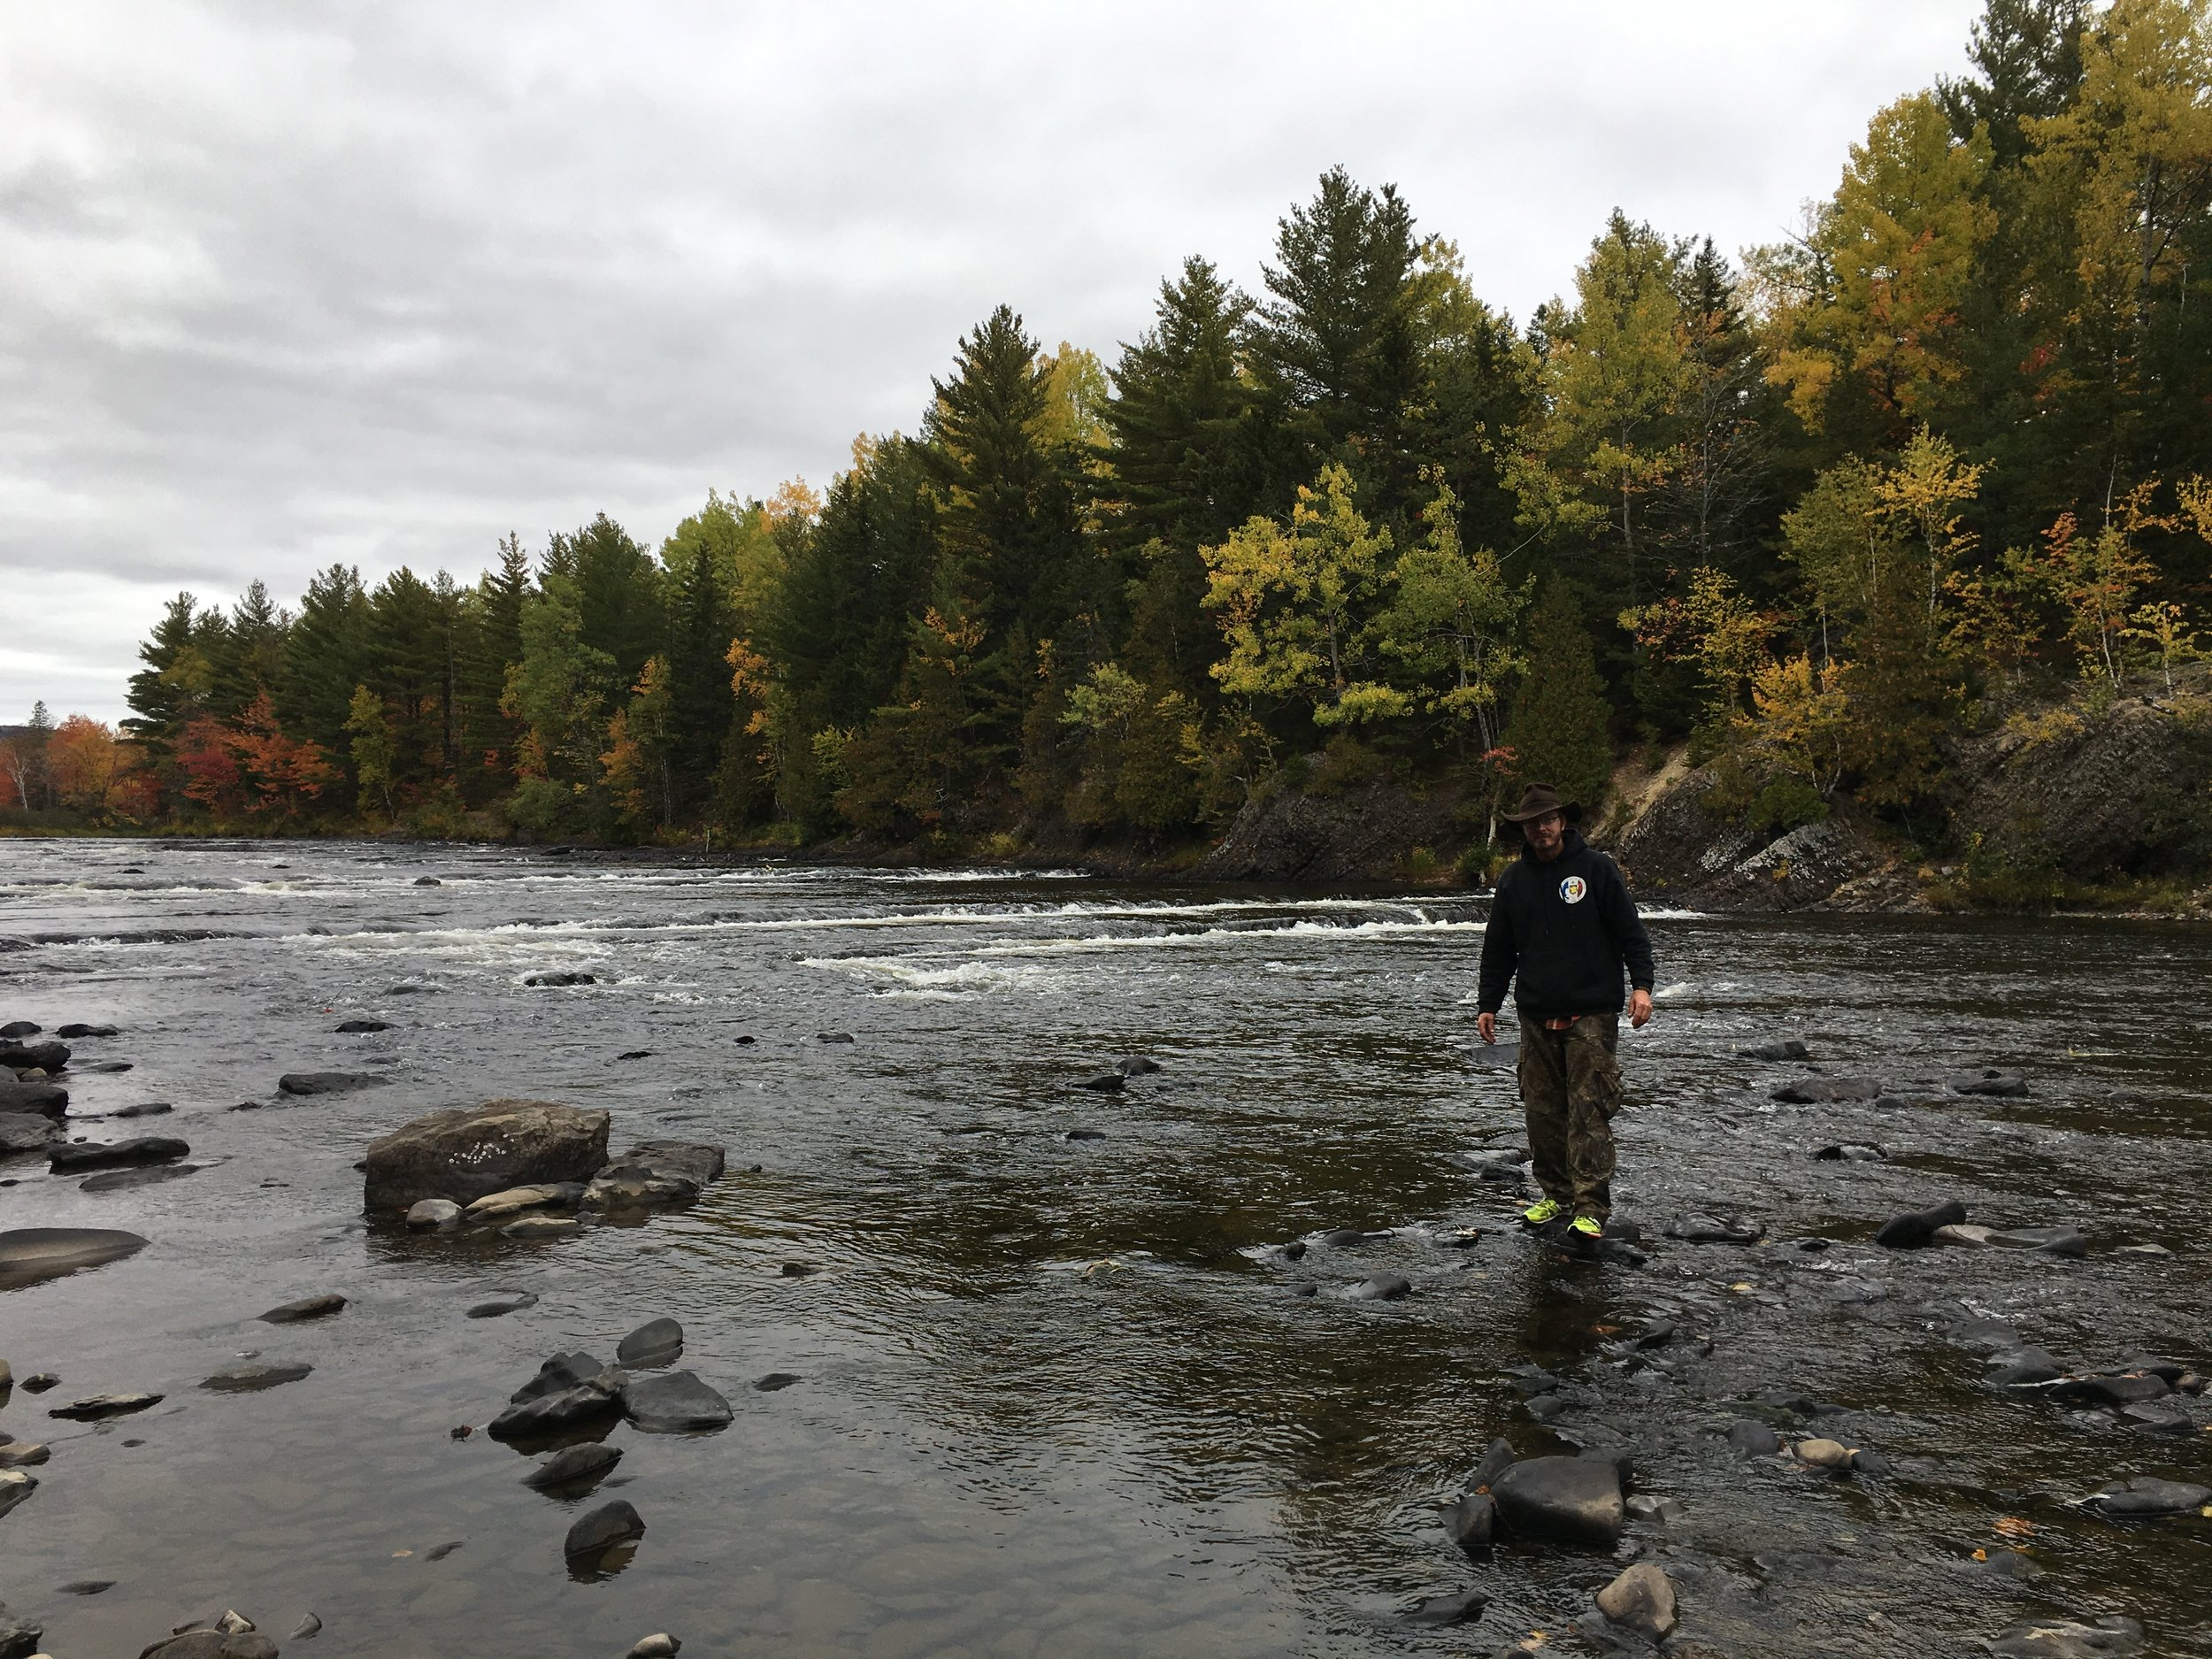 Craig walks through the river in Baxter State Park.